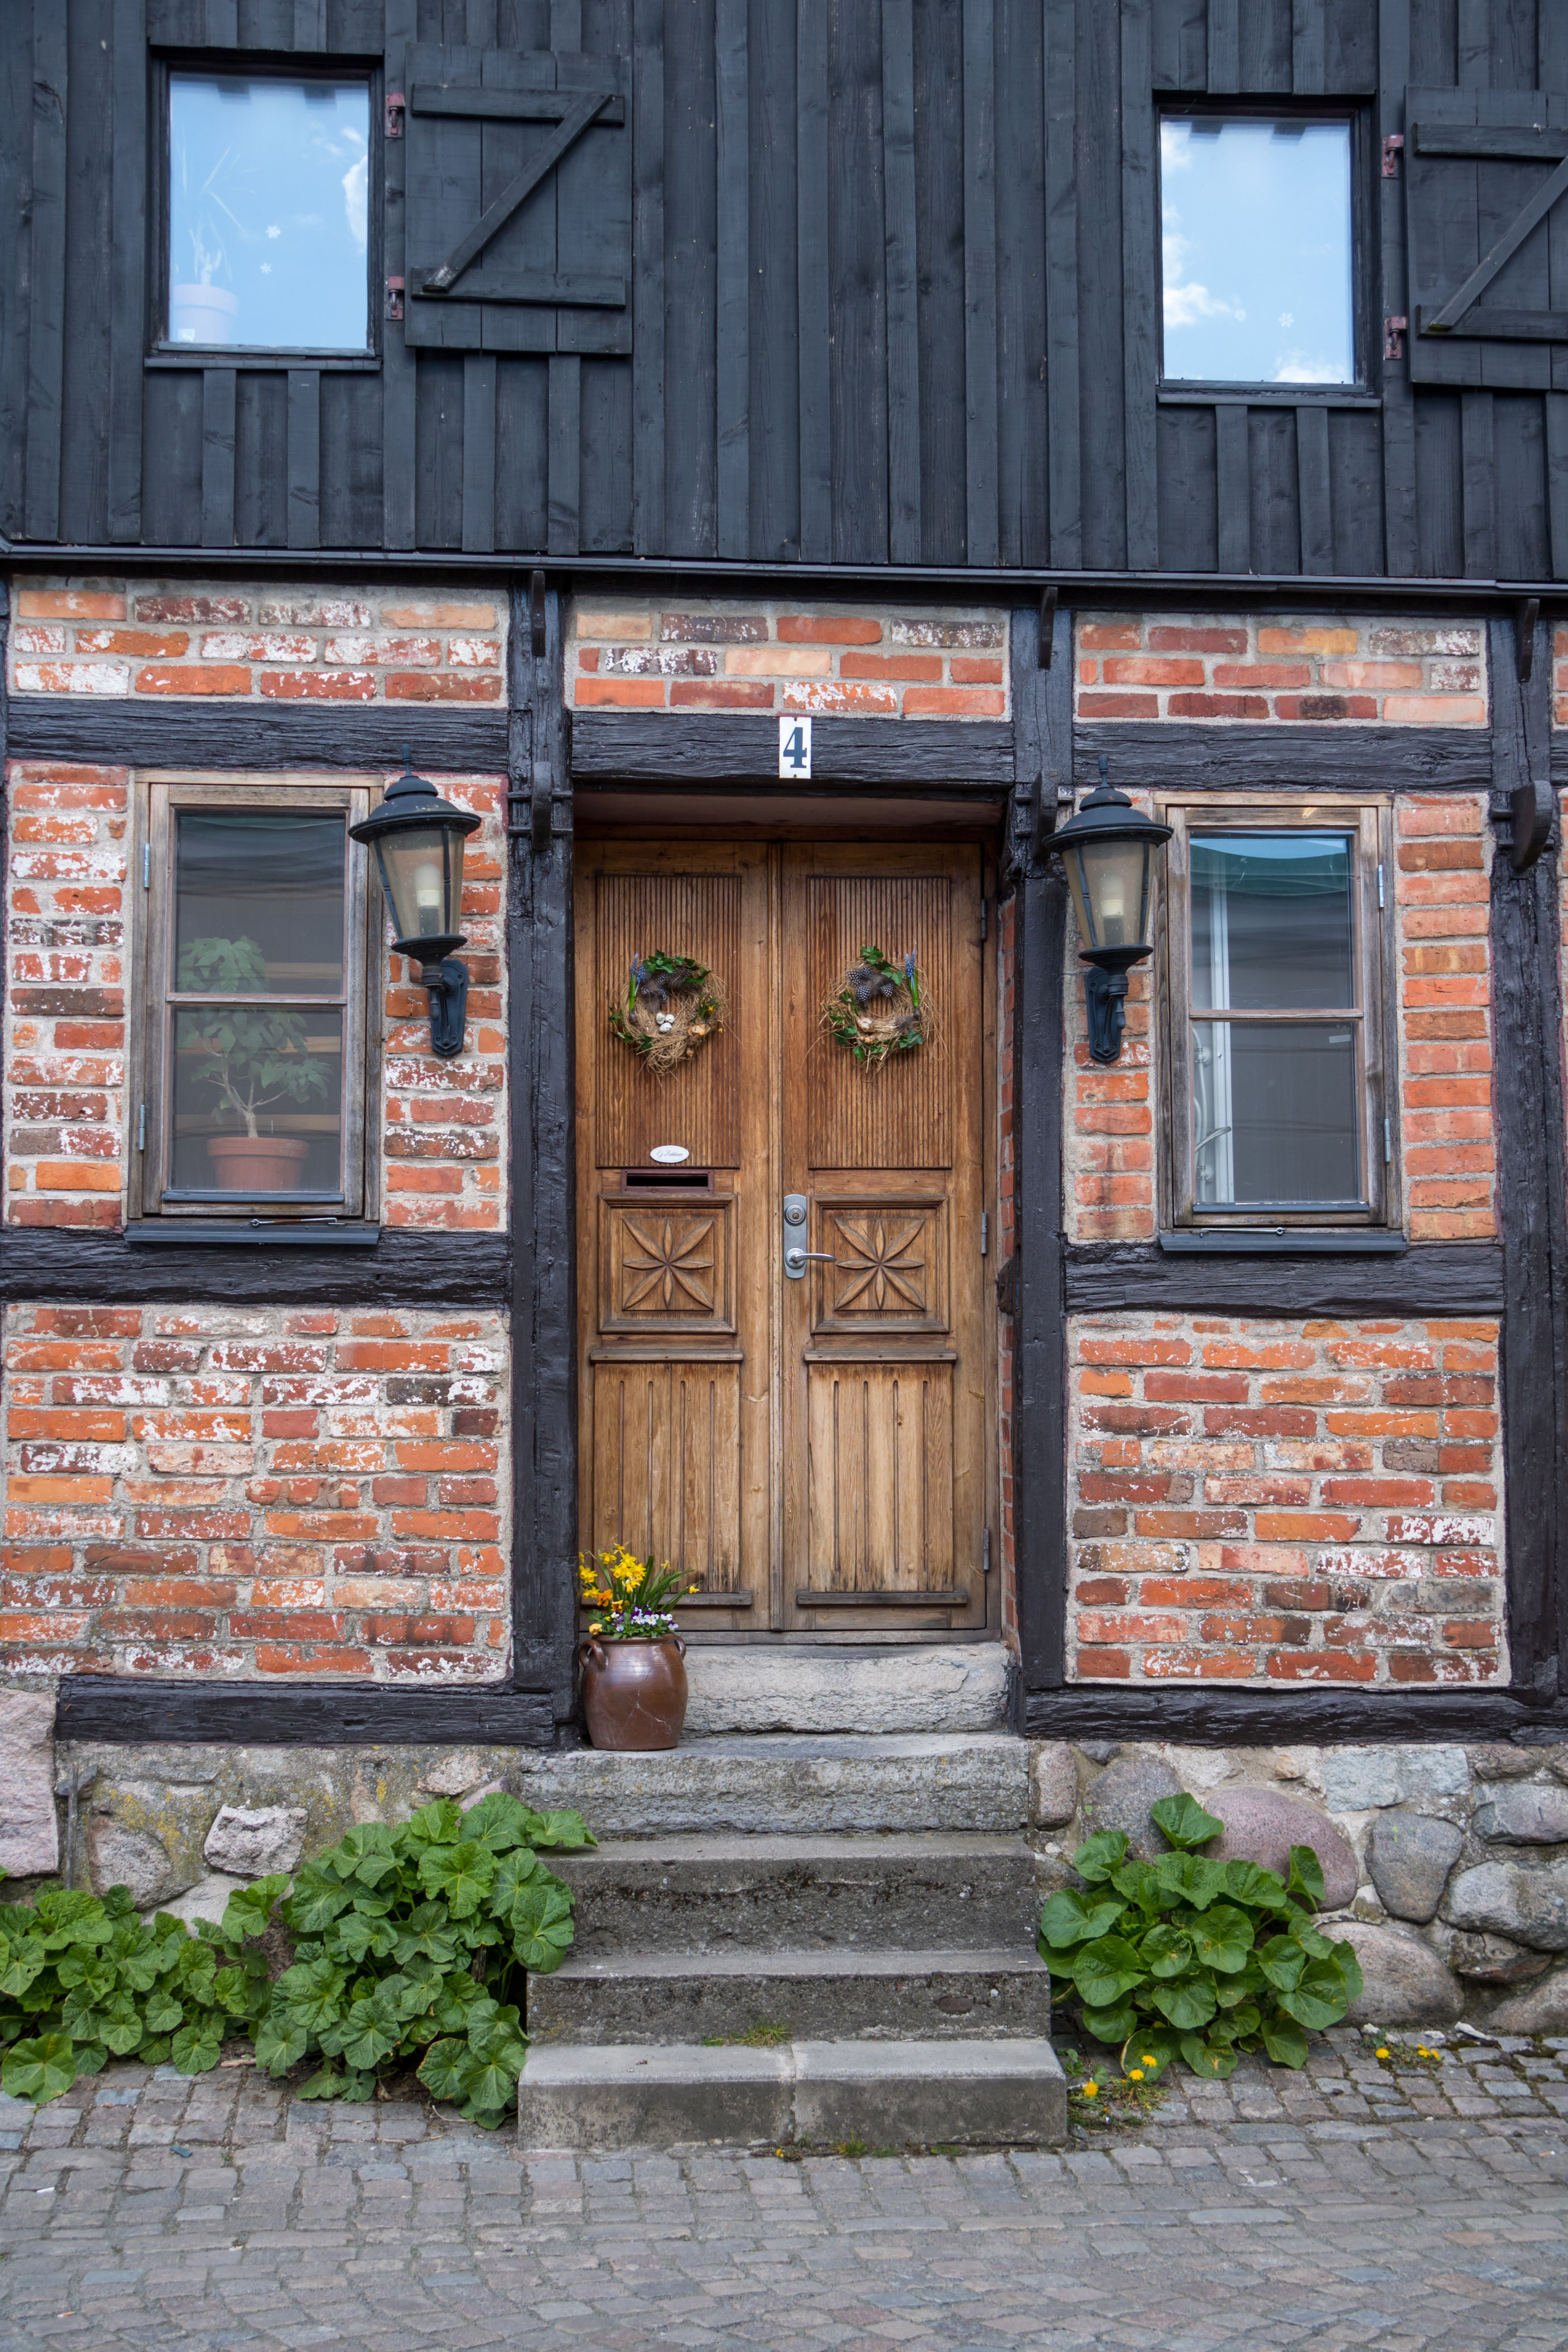 Window City Street Architecture Wall Road Wood House  Town Door Cottage Brick Downtown Alley D Rr Ystad Home  Facade Urban Area Human Settlement Neigu2026